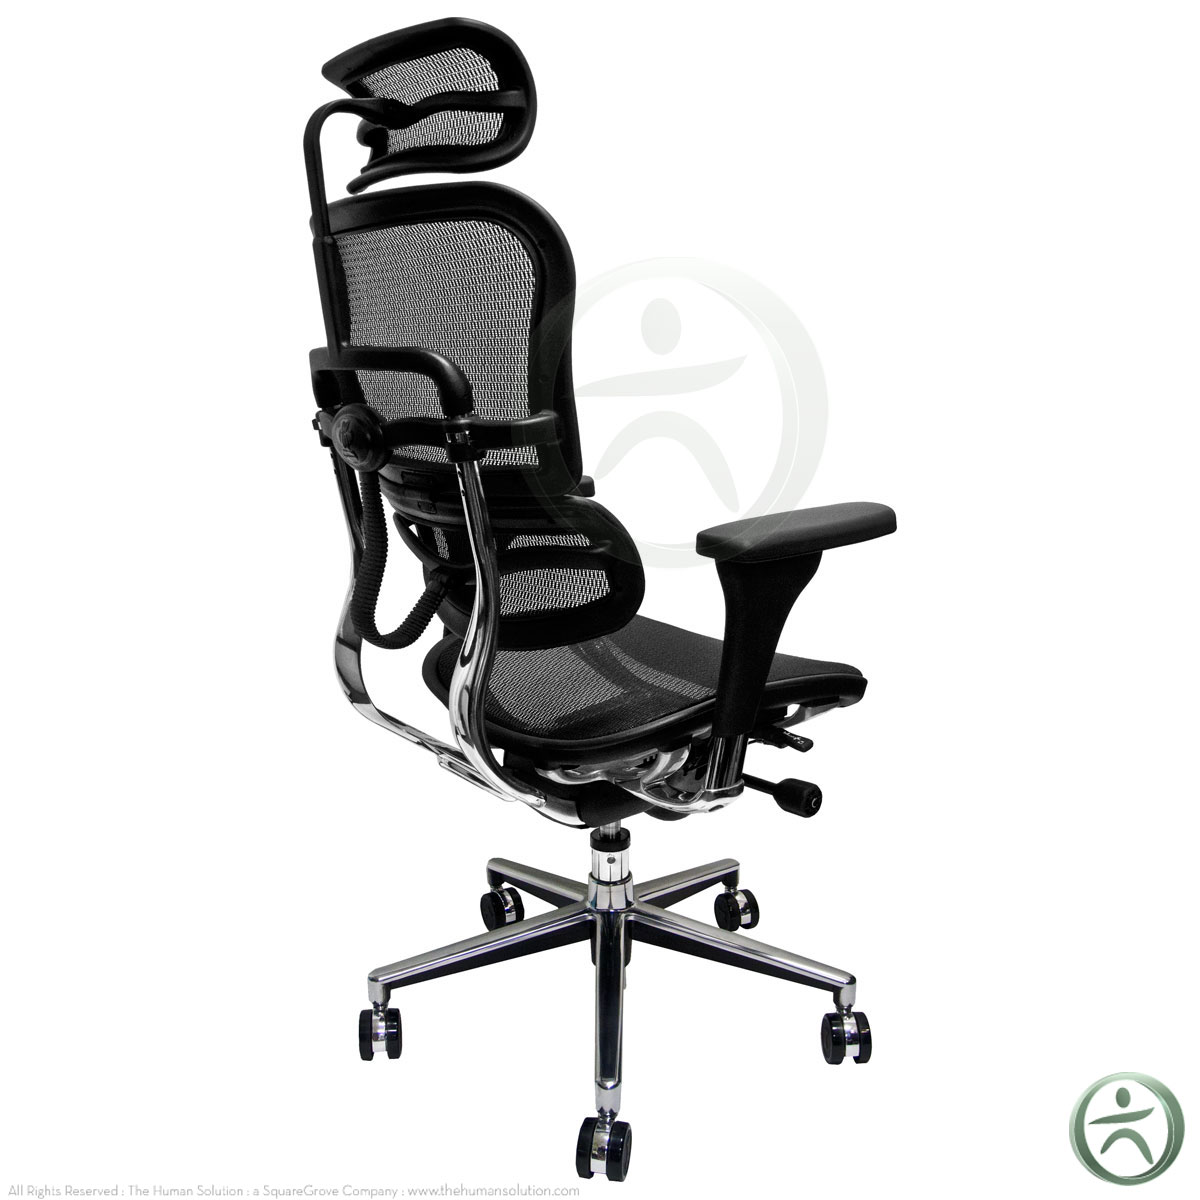 raynor ergohuman me7erg mesh chair with headrest open box clearance. Black Bedroom Furniture Sets. Home Design Ideas